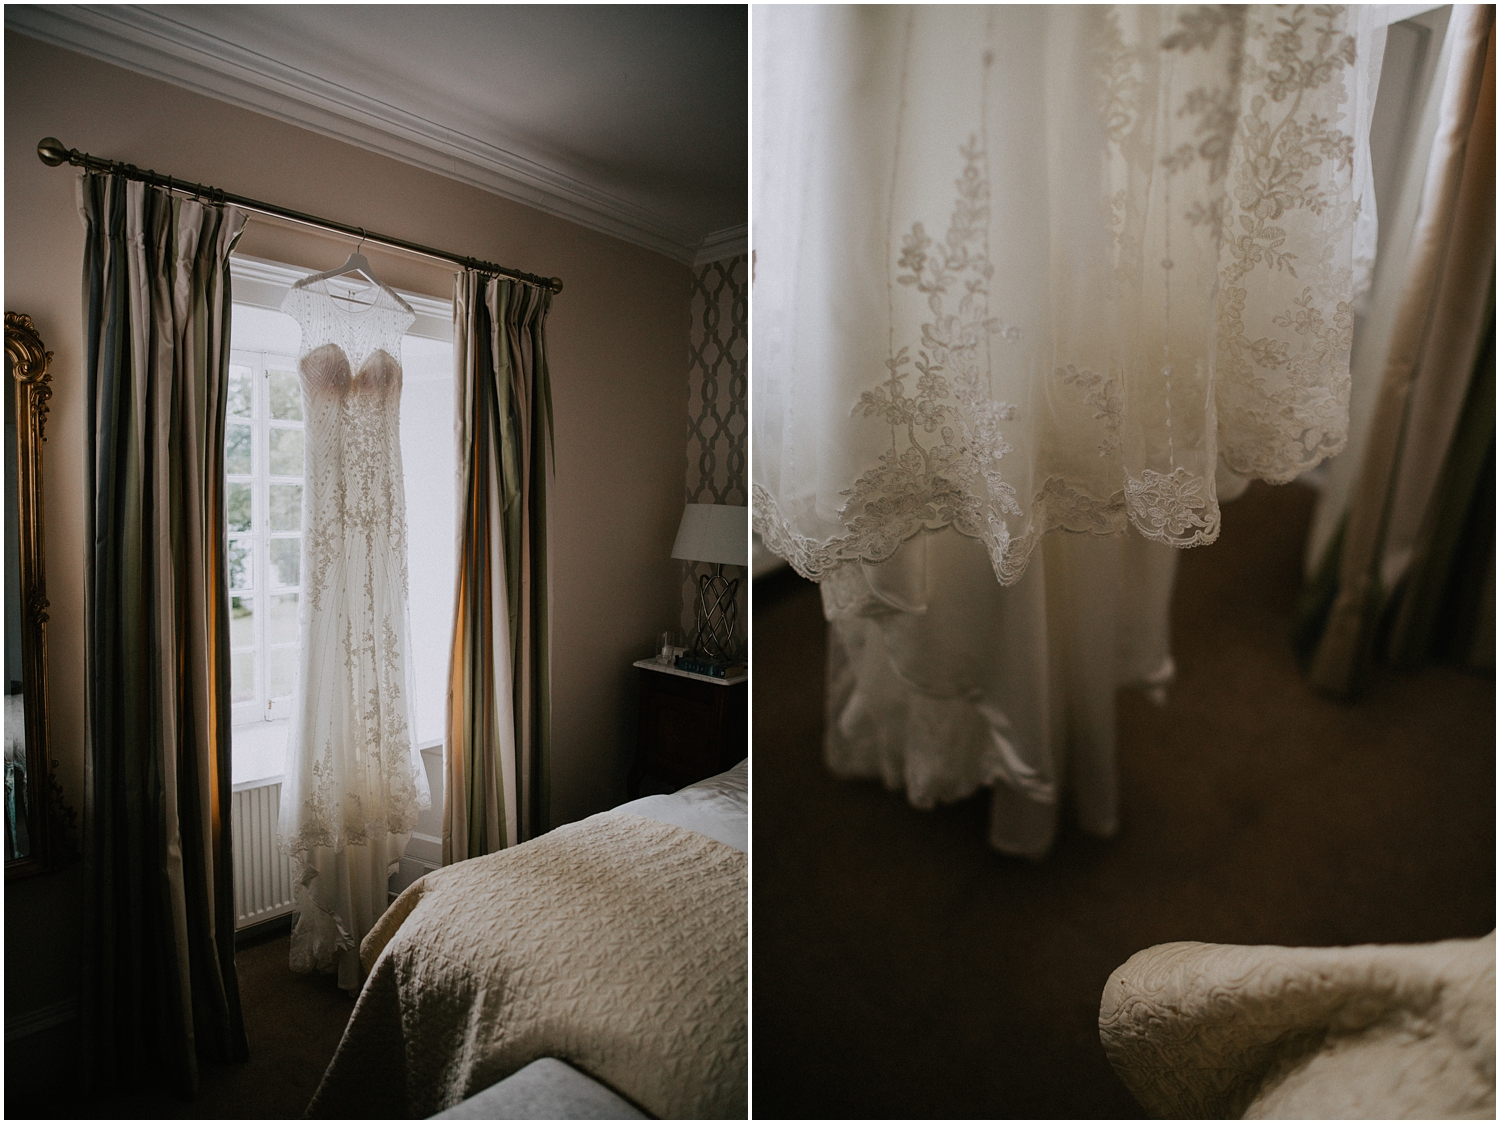 The bridal dress from Melle Cloche is hanging on a window in the room at Altskeith Country House